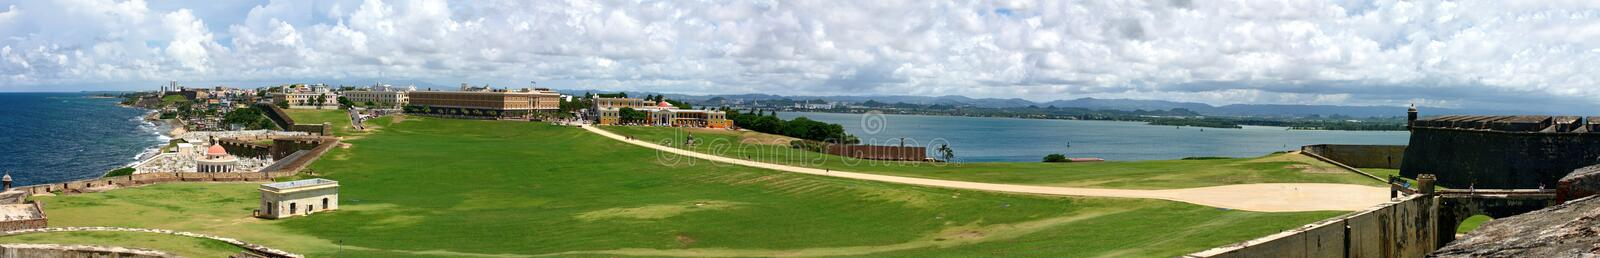 Old San Juan Pano. Wide angle panoramic view of Old San Juan Puerto Rico from El Morro fortification stock image